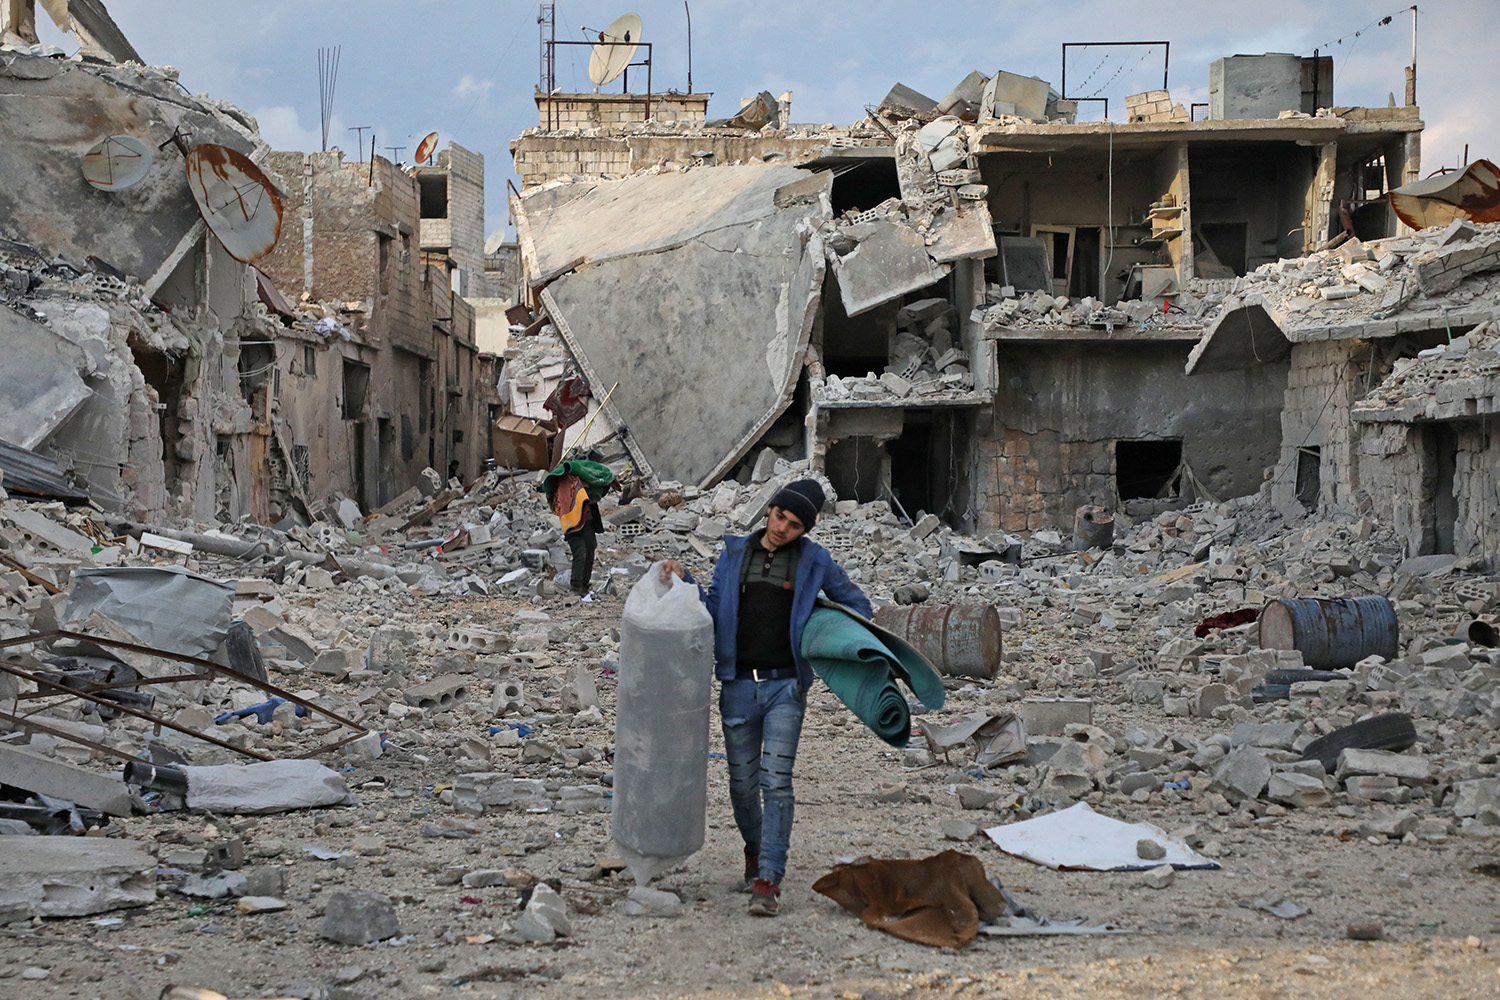 Syrians salvage some of their belongings from the rubble of houses as they prepare to flee the town of Atareb in the rebel-held western countryside of Syria's Aleppo province on Feb. 22. NAYEF AL ABOUD/AFP via Getty Images